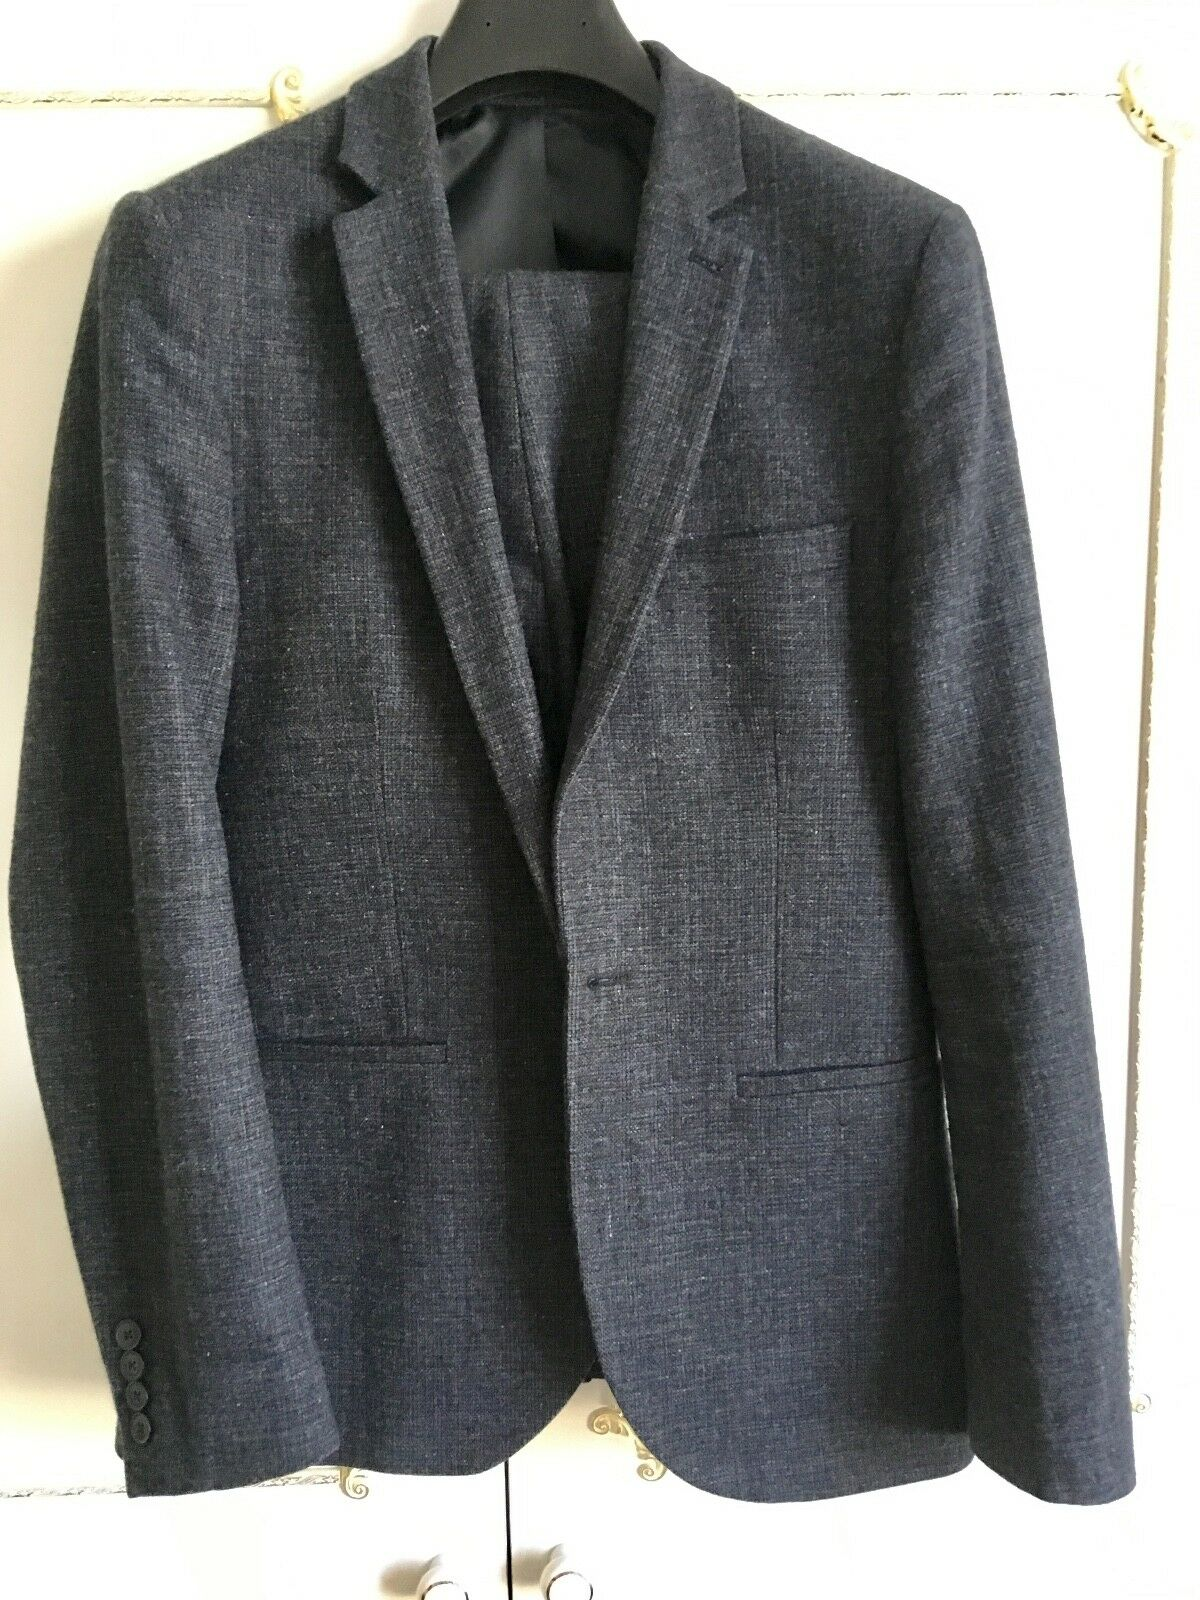 Top Man Men's Dark bluee wool 2 piece suit - chest 38